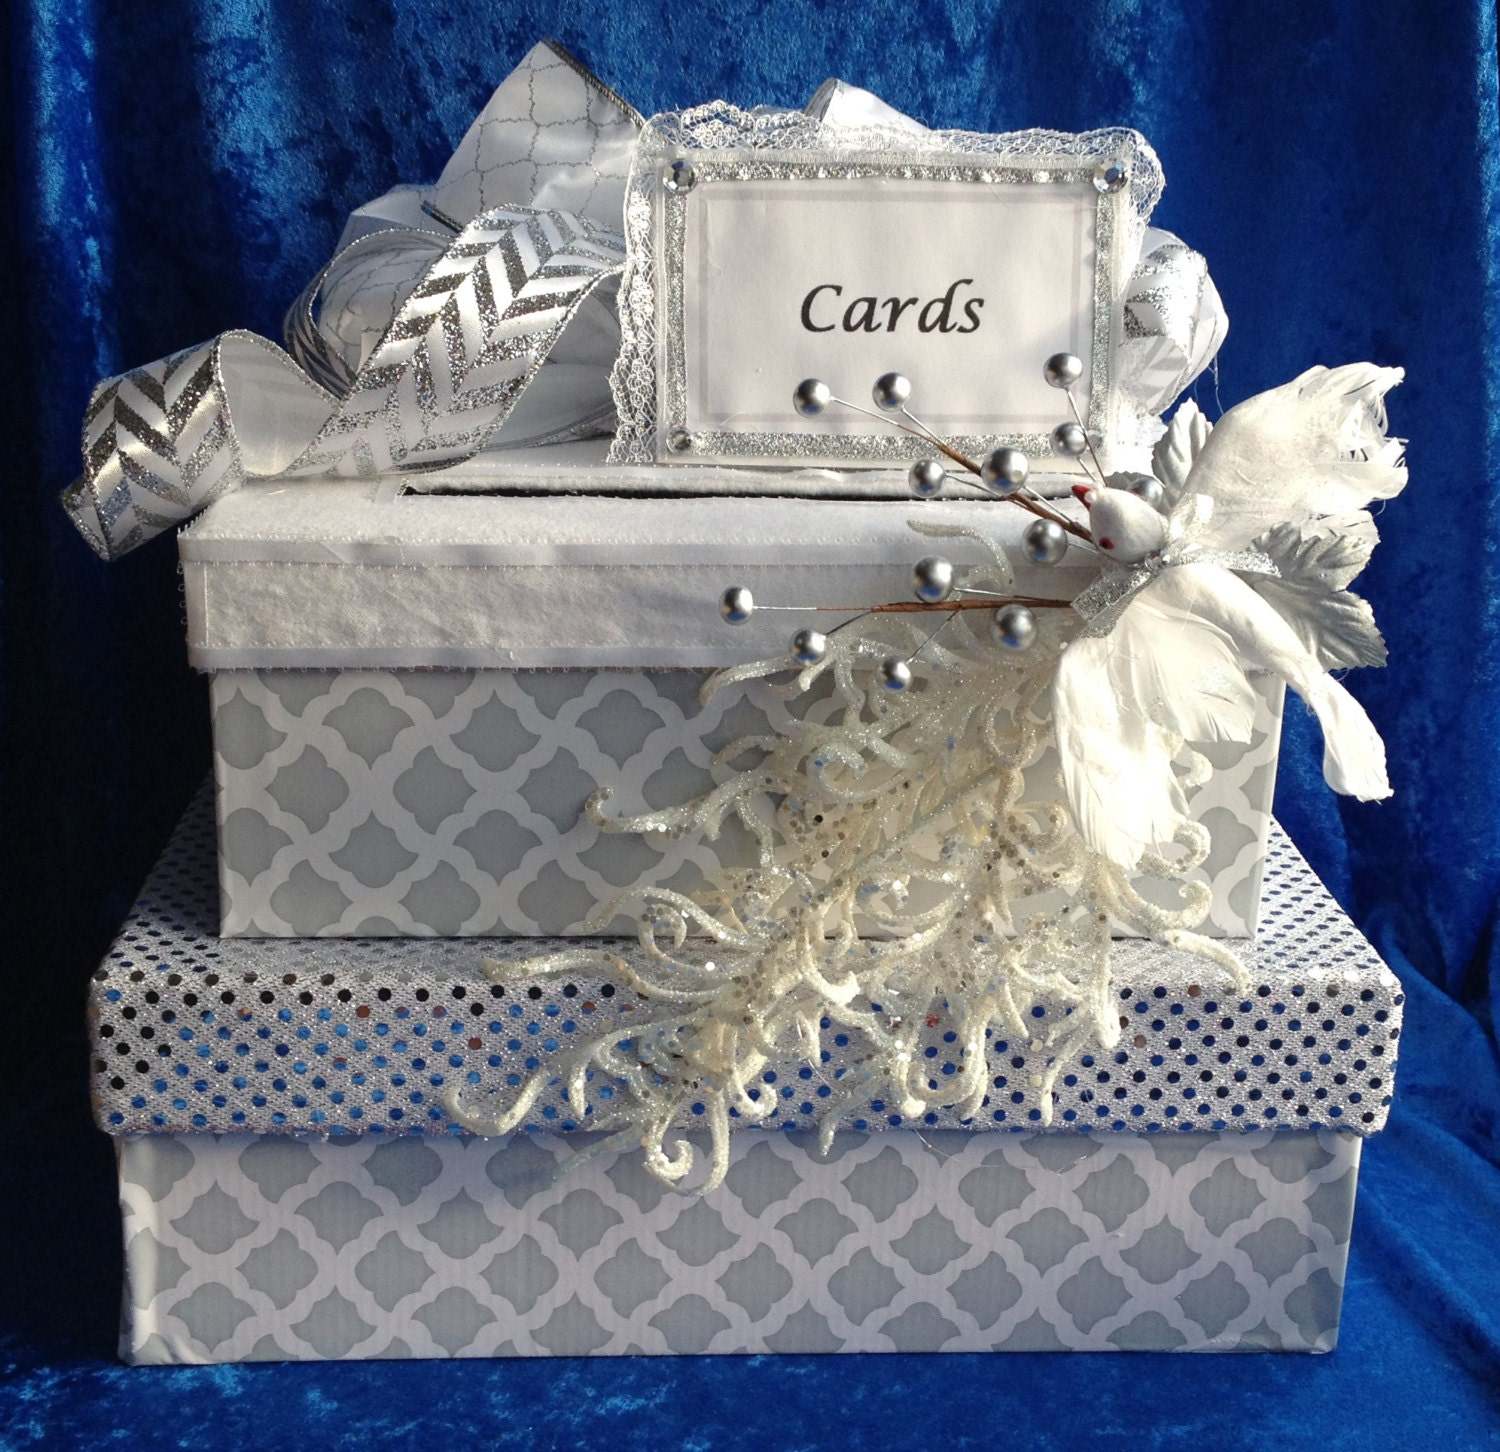 Gift Table At Wedding Reception: Wedding Card Boxwedding Reception Table Decorationcard